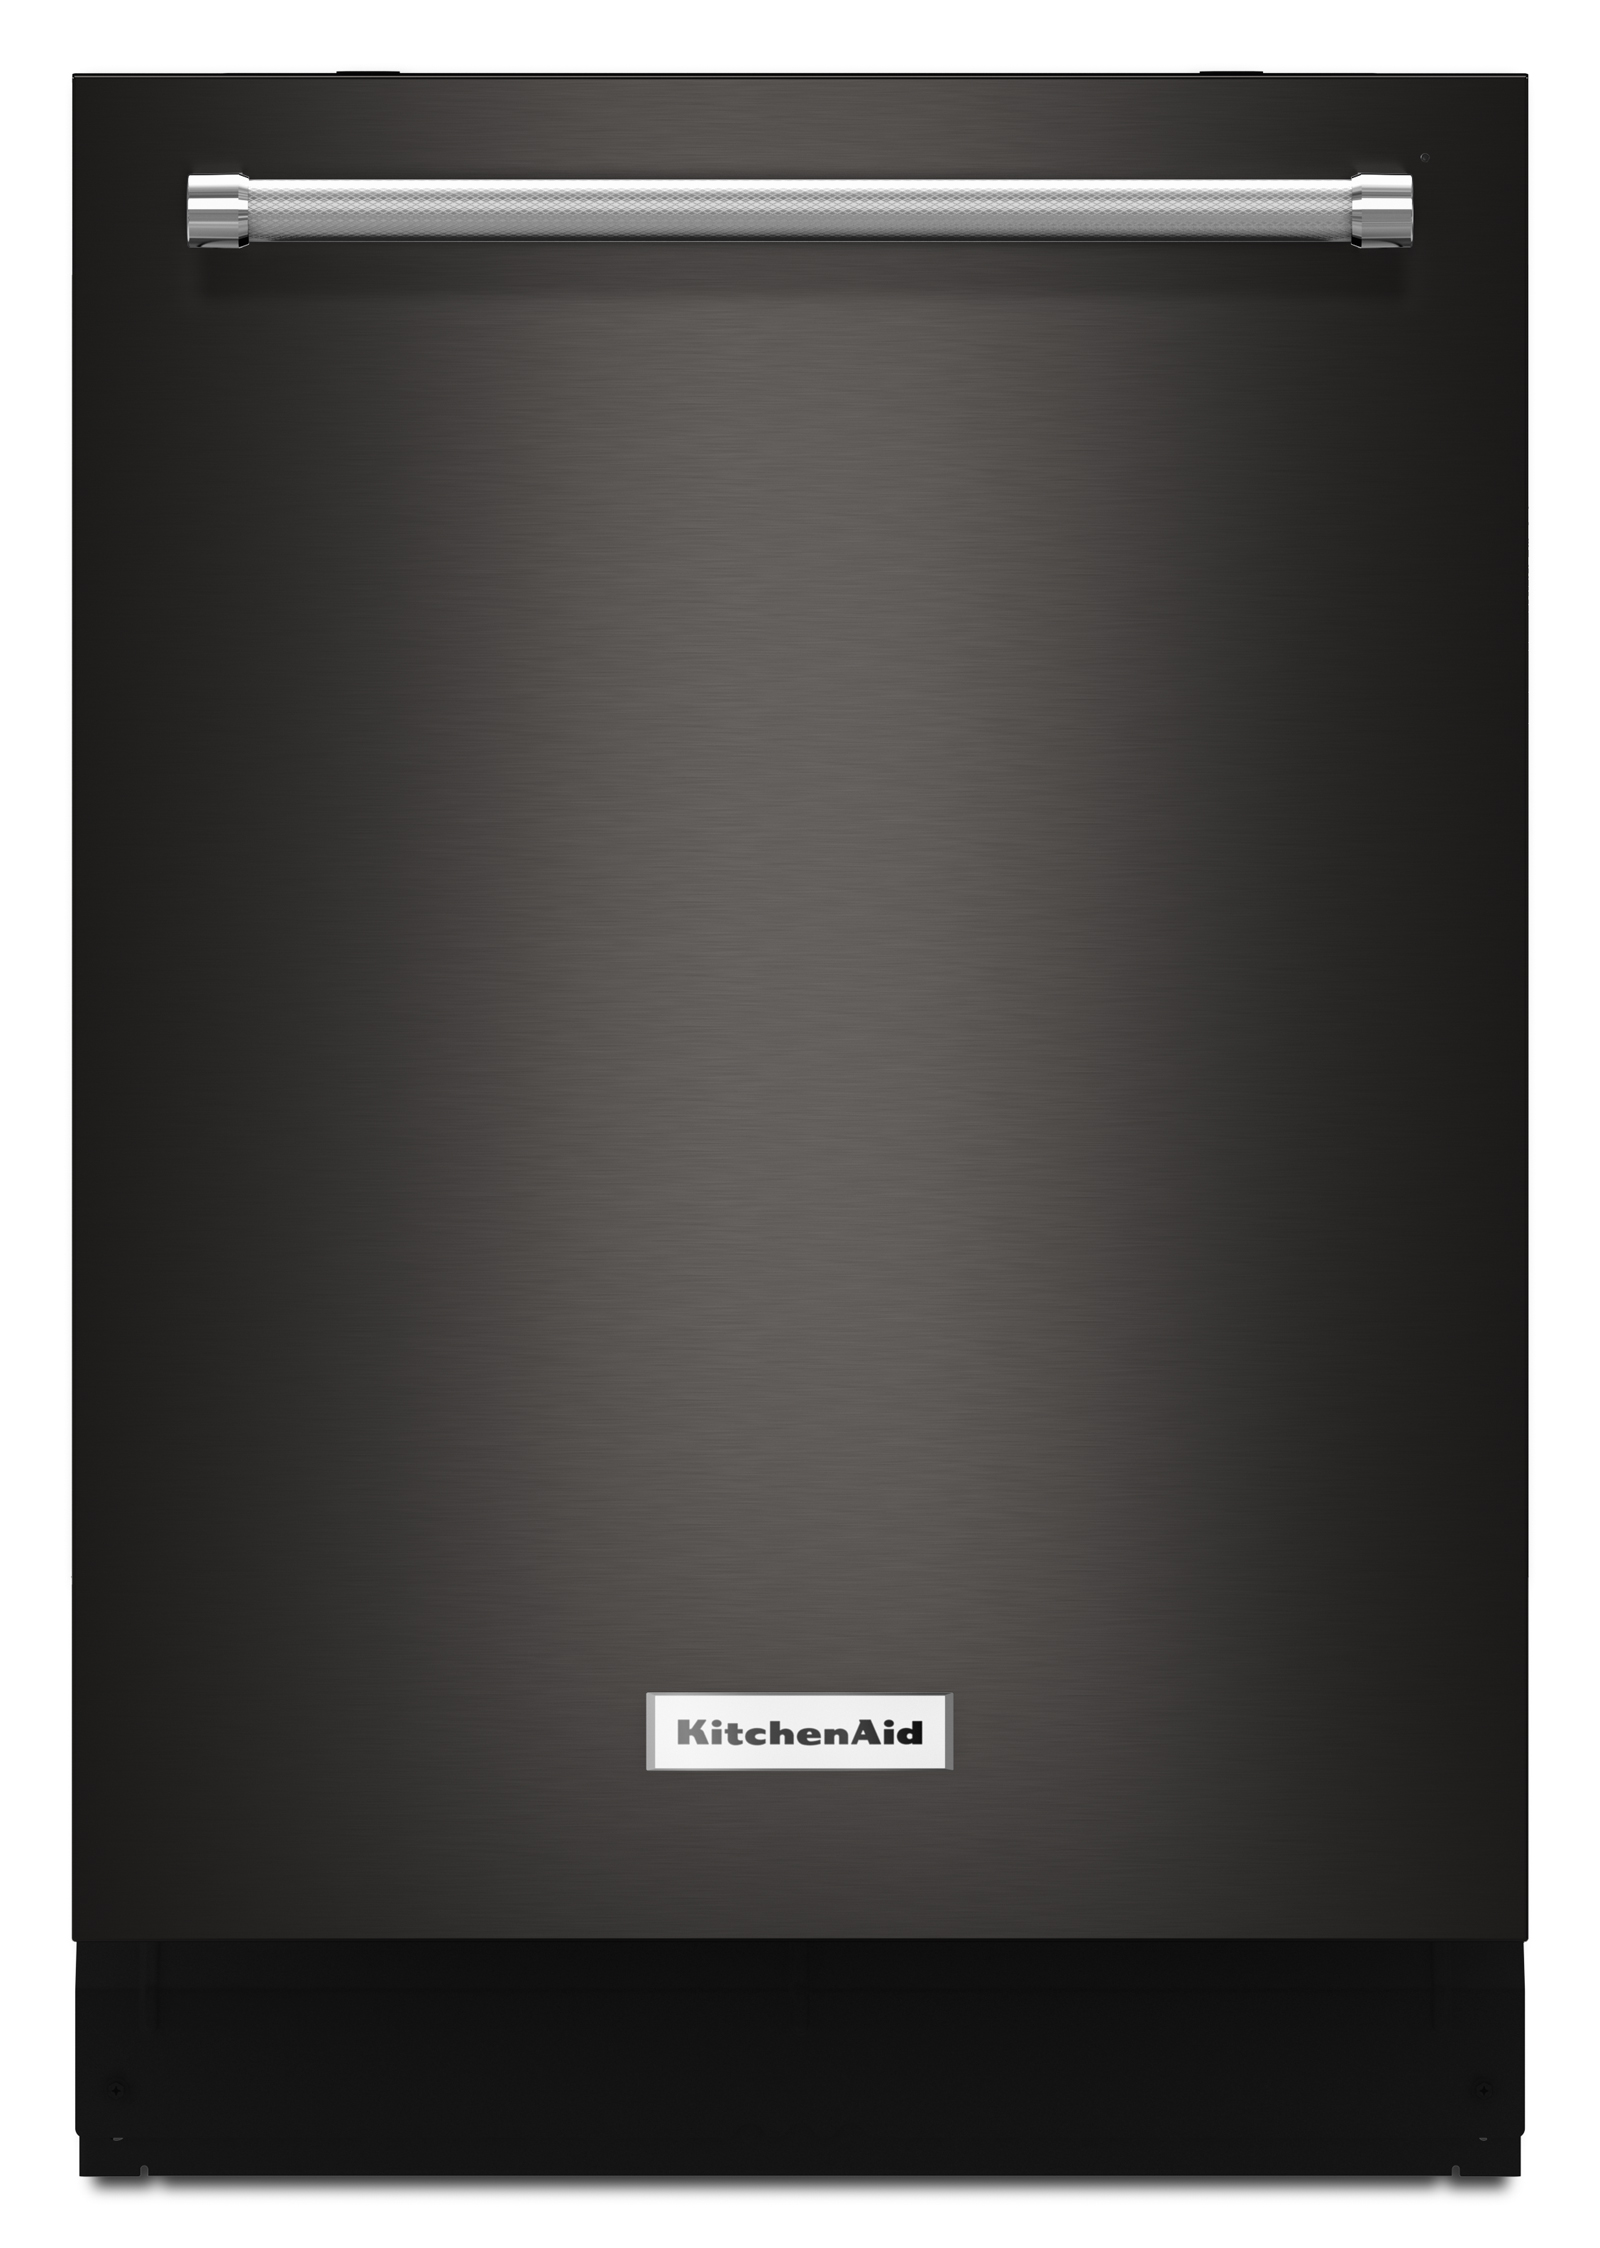 KitchenAid KDTM404EBL 24 Top Control Built-In Dishwasher - Black